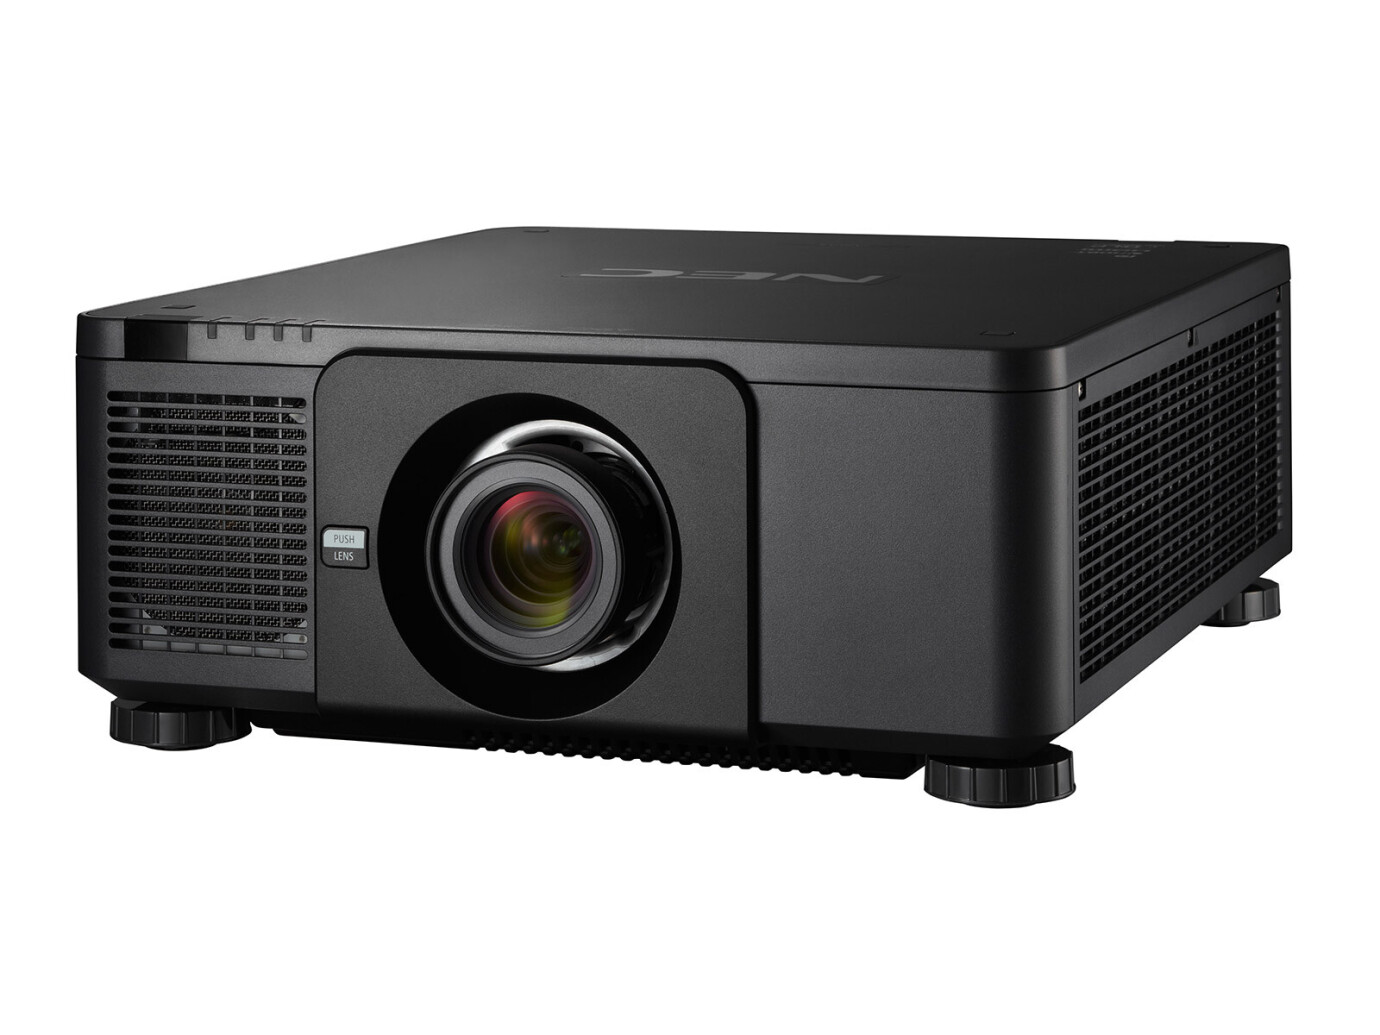 NEC PX803UL-BK (with NP18ZL lens)